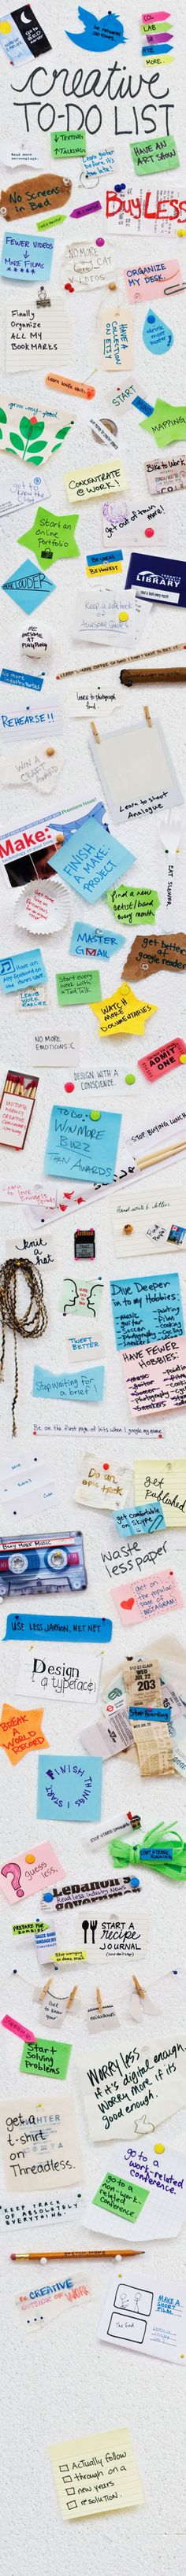 "Designer's ""Resolutions"" graphic - creative to-do list"